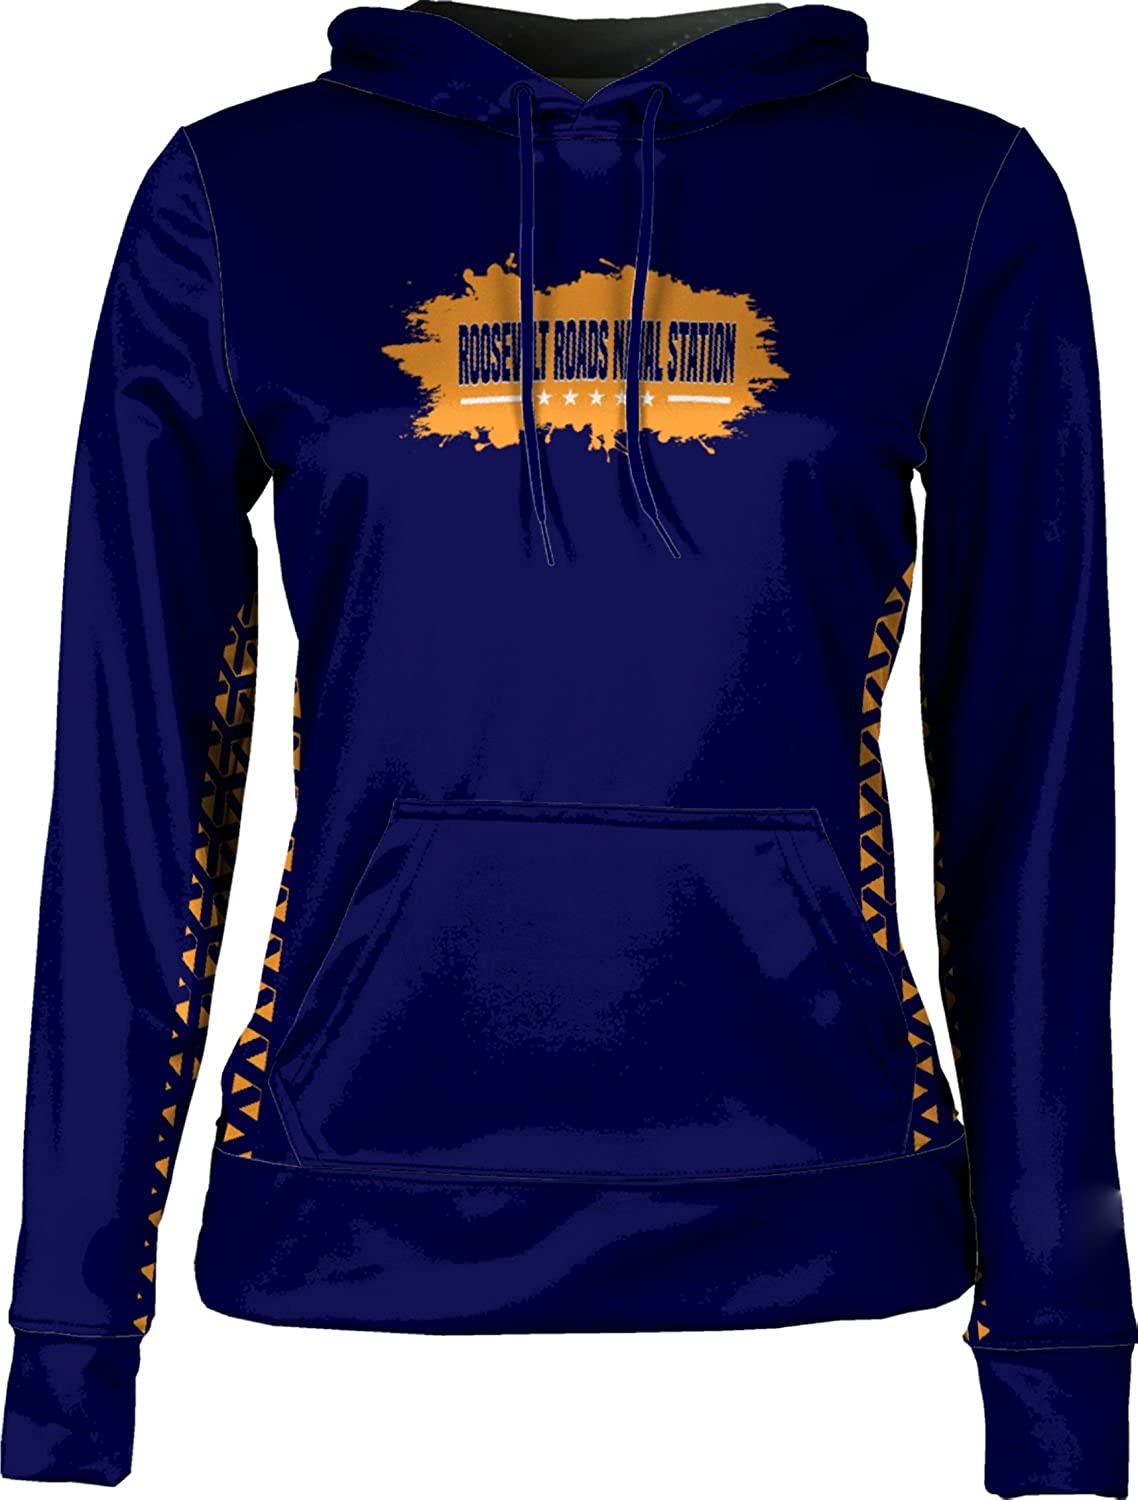 Women's Roosevelt Roads Naval Station Military Geometric Pullover Hoodie